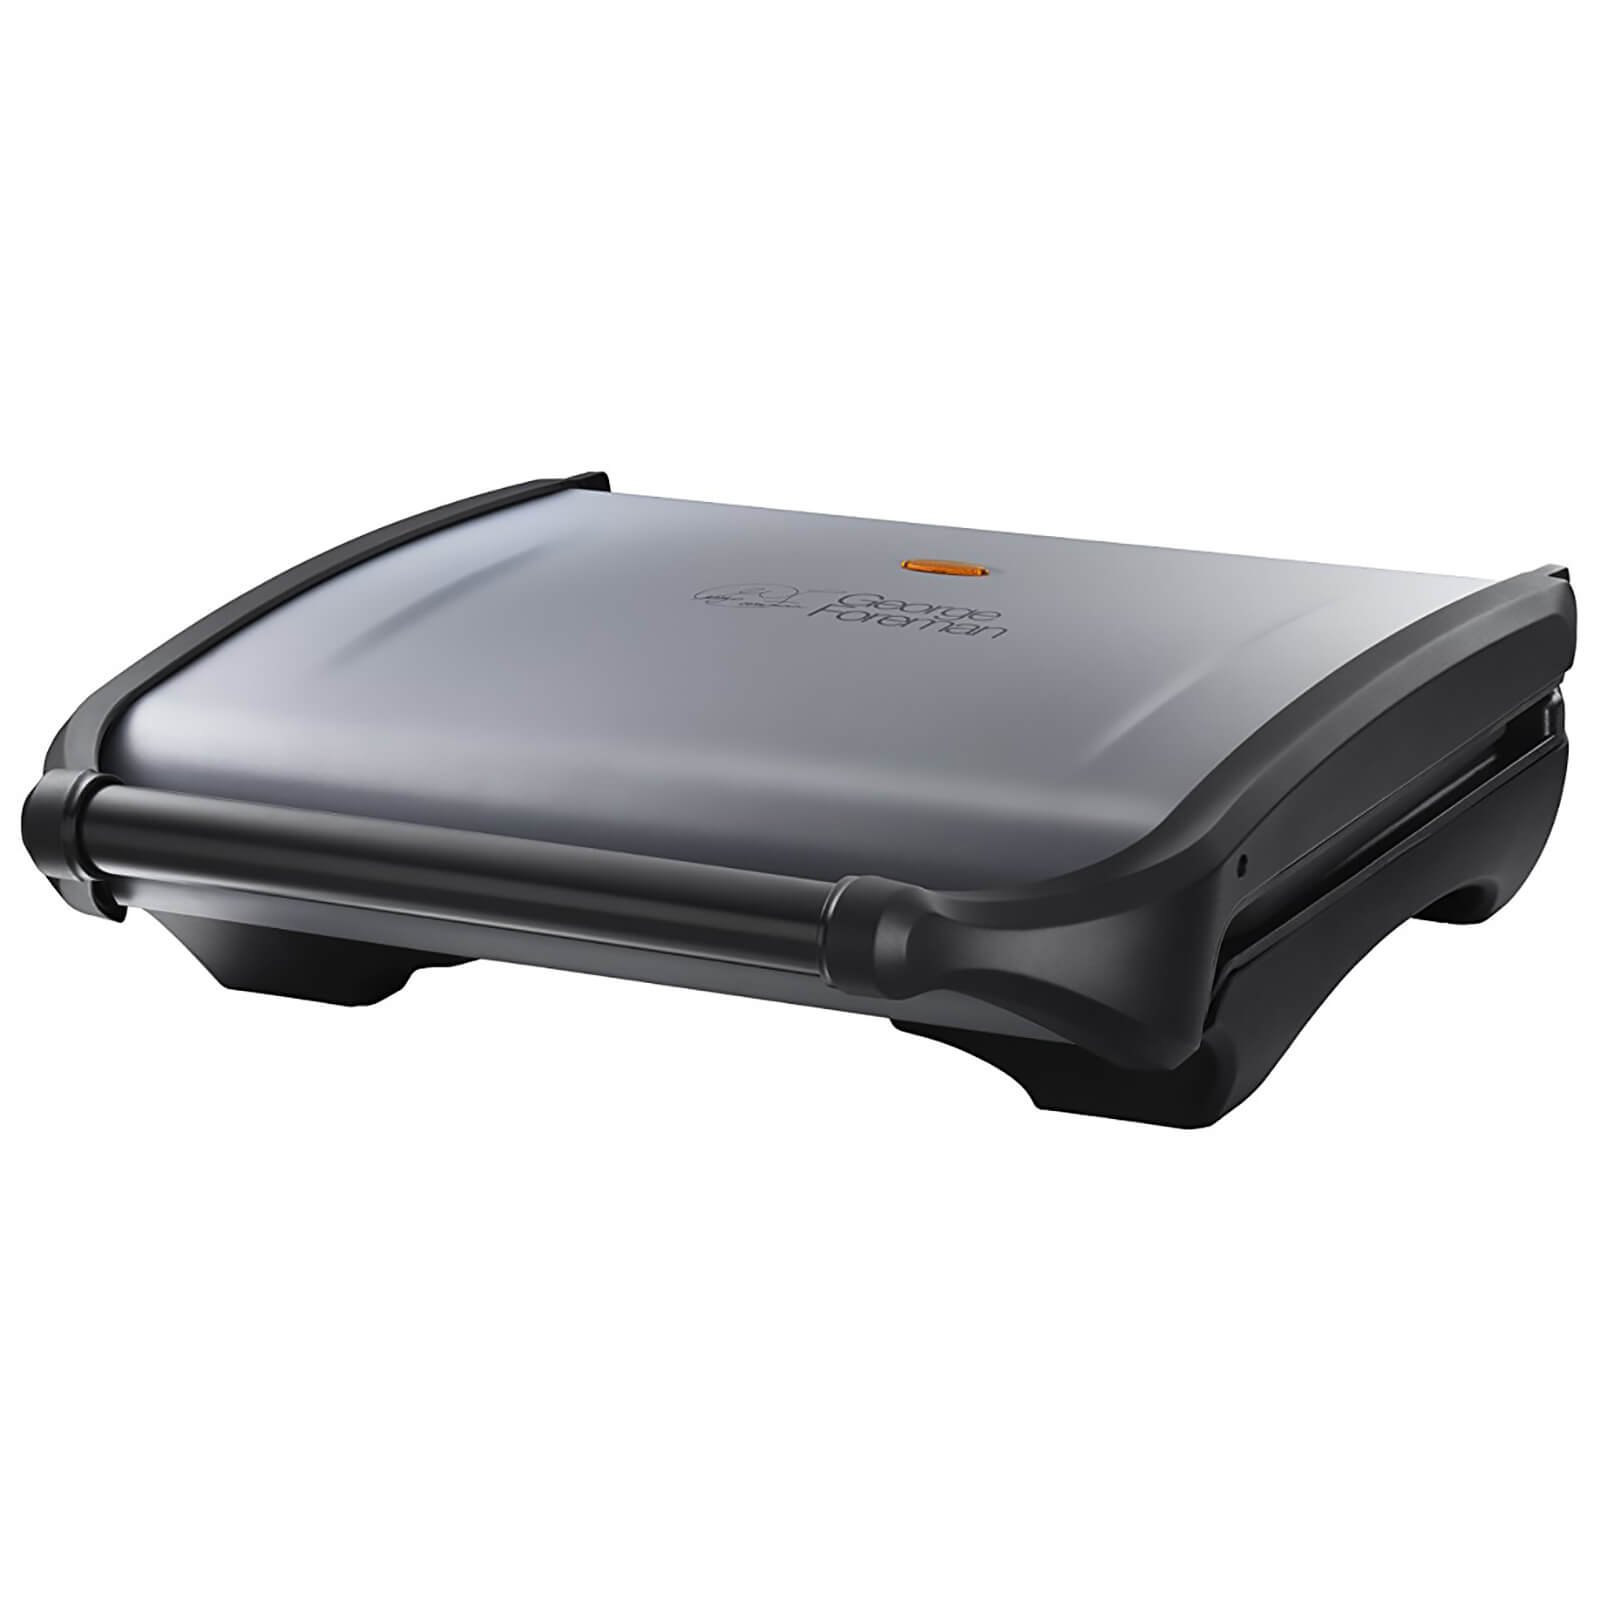 George Foreman 19930 7 Portion Grill